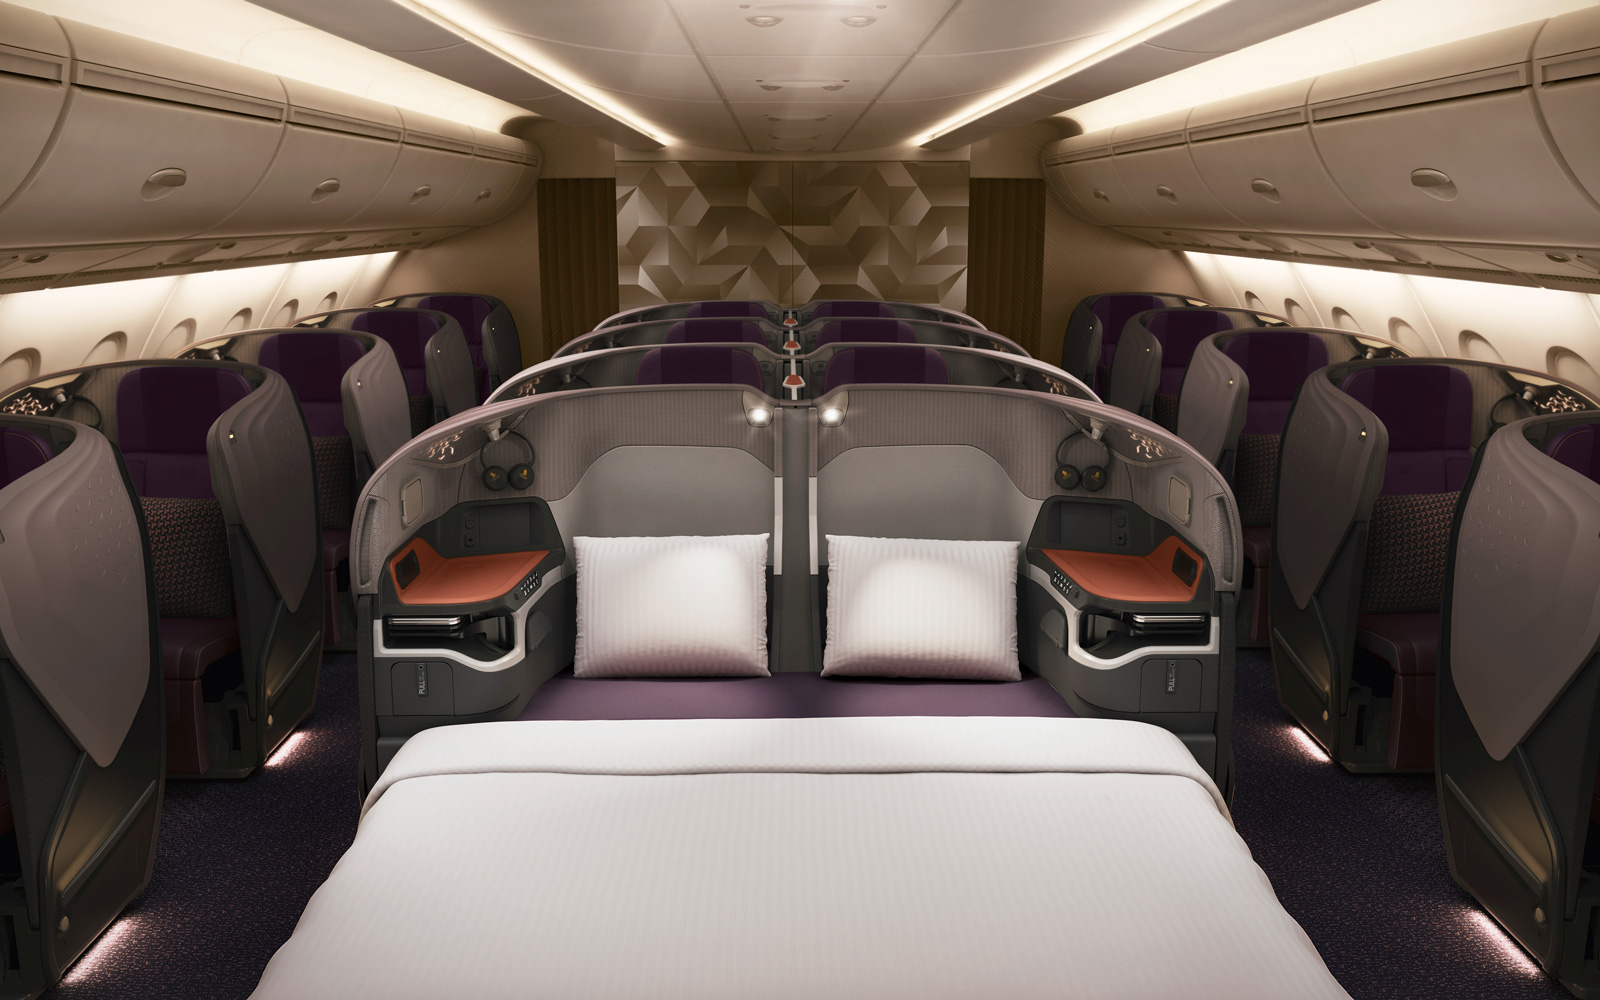 Singapore Airlines Just Unveiled Its New A380 Design and It Looks Amazing